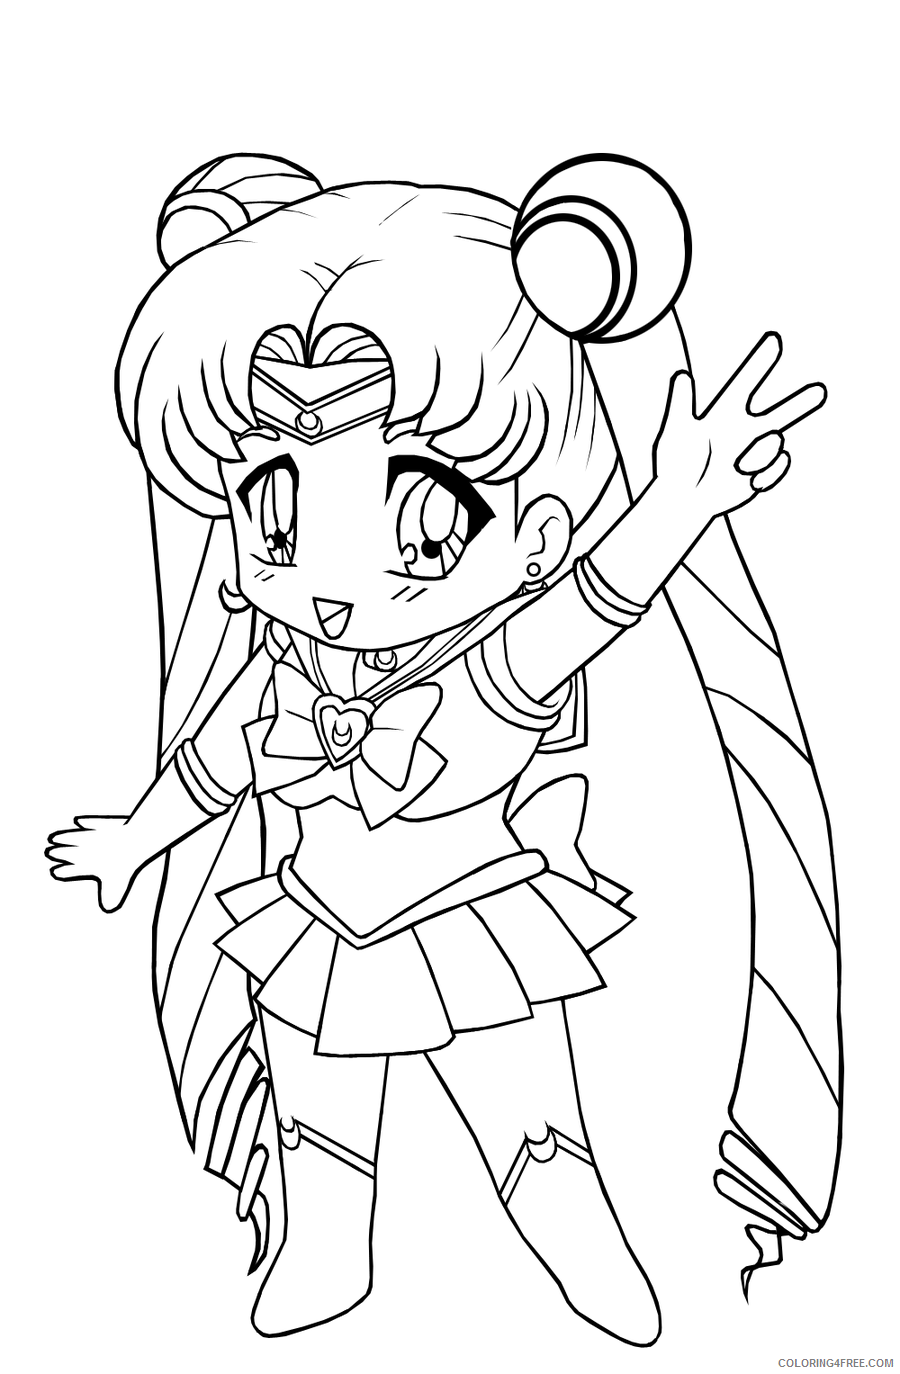 chibi coloring pages sailor moon Coloring4free